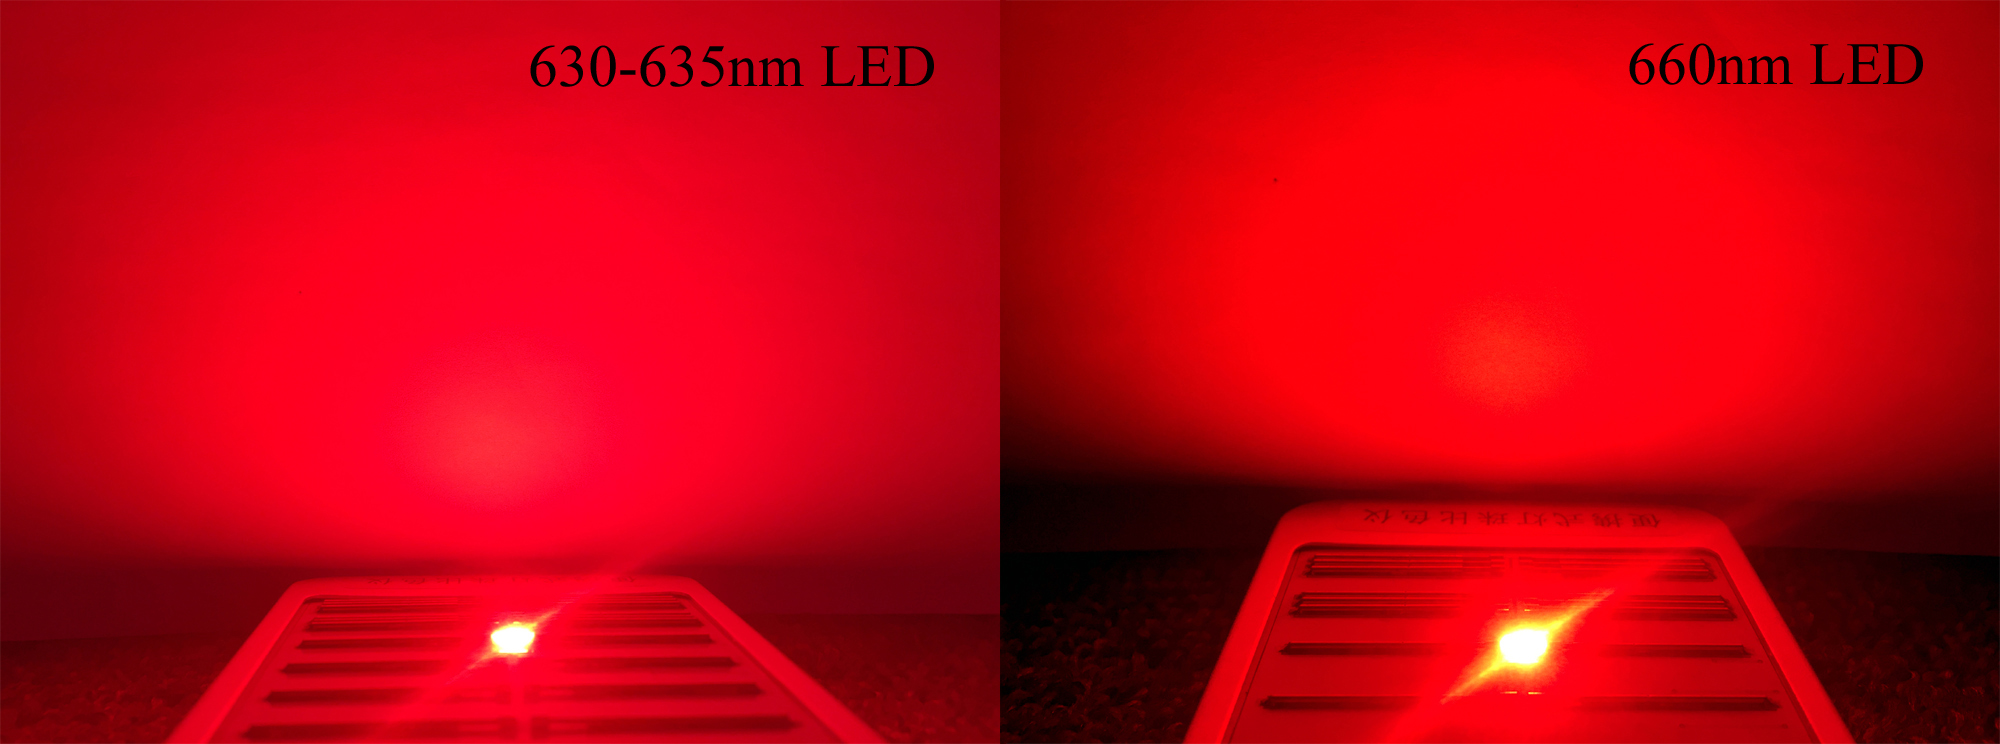 630nm VS 660nm LED